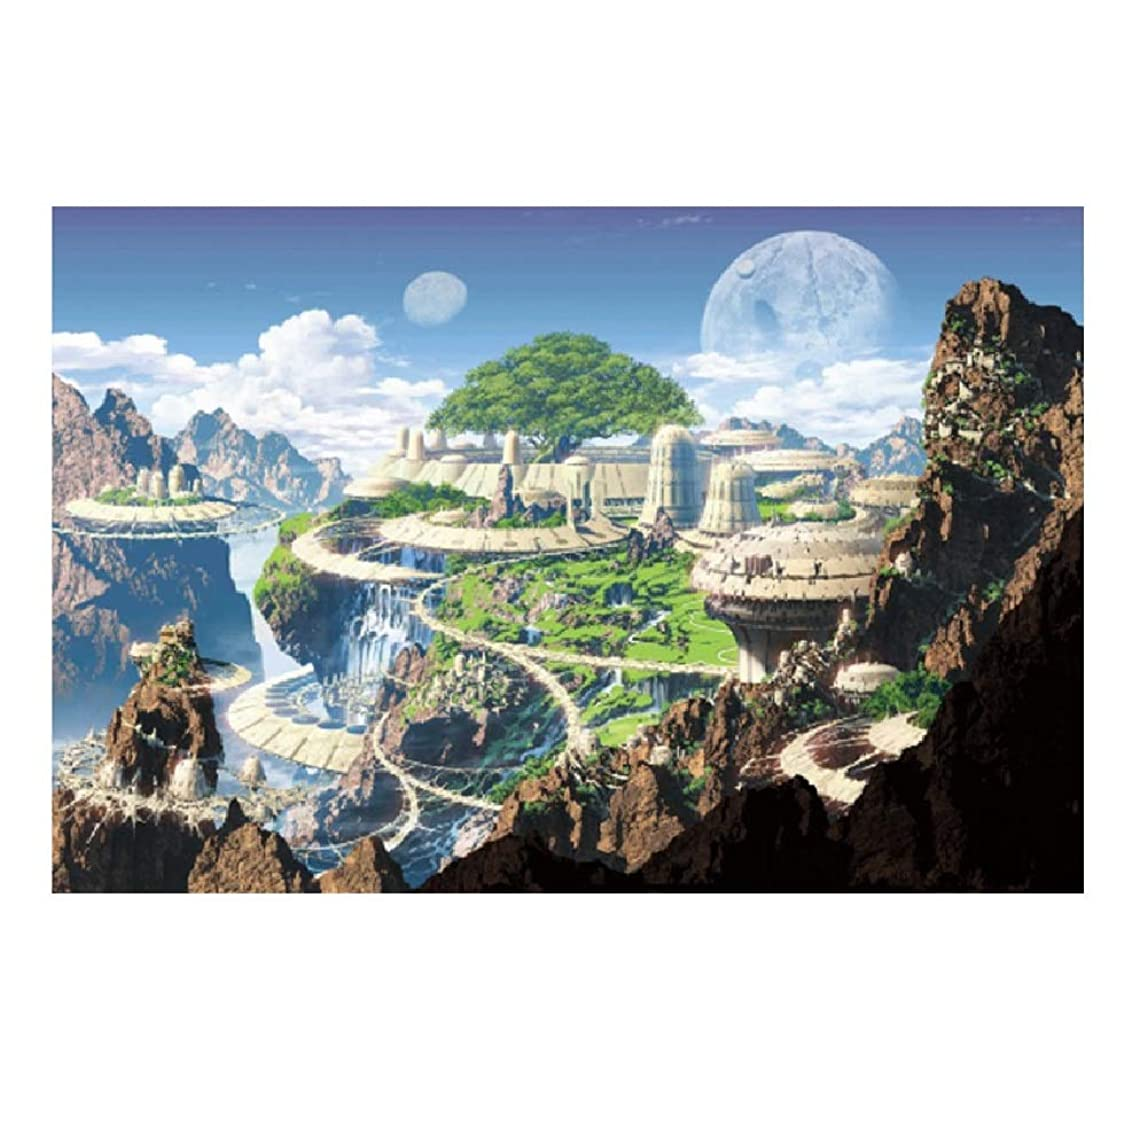 PARATOS Fantasy 1000 Piece Forest City Town Castle Tribe Winding Mountain Road Landscape Picture Wooden Jigsaw Puzzles for Home Photo Frame Wall Decoration naucaot471511